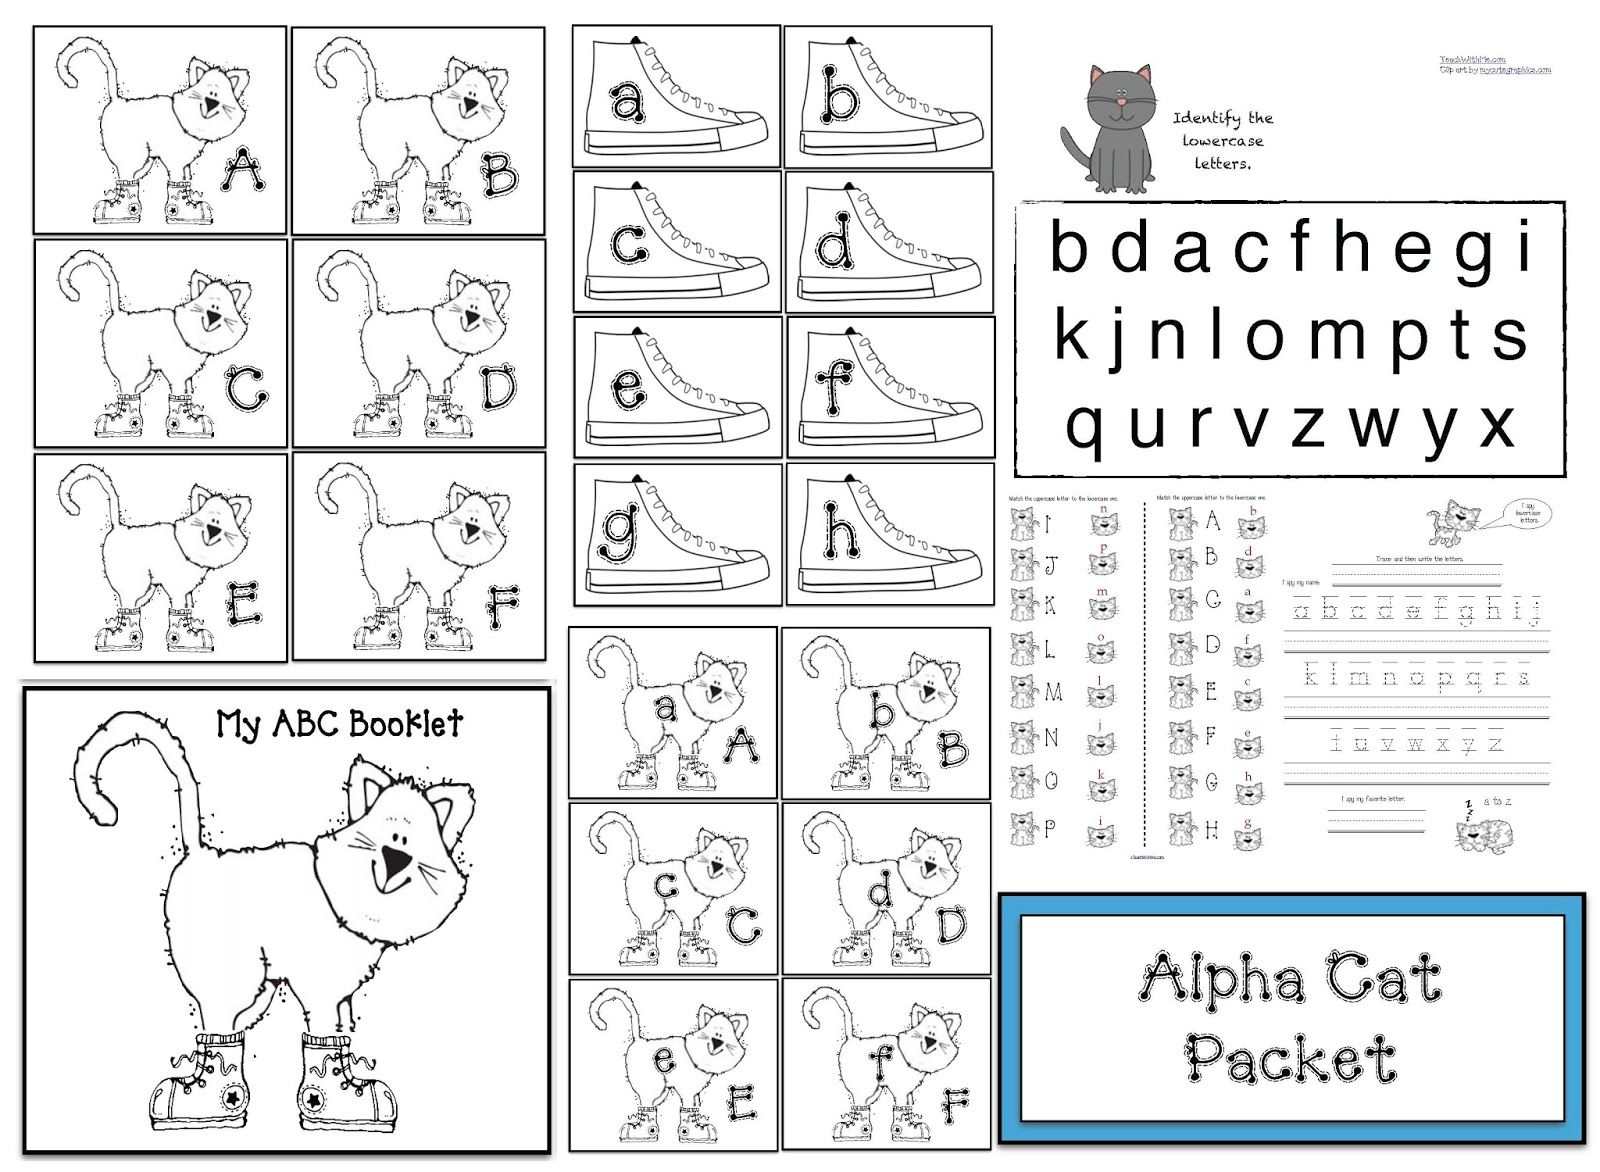 Alpha Cat Packet With Alphabet Activities Amp Games